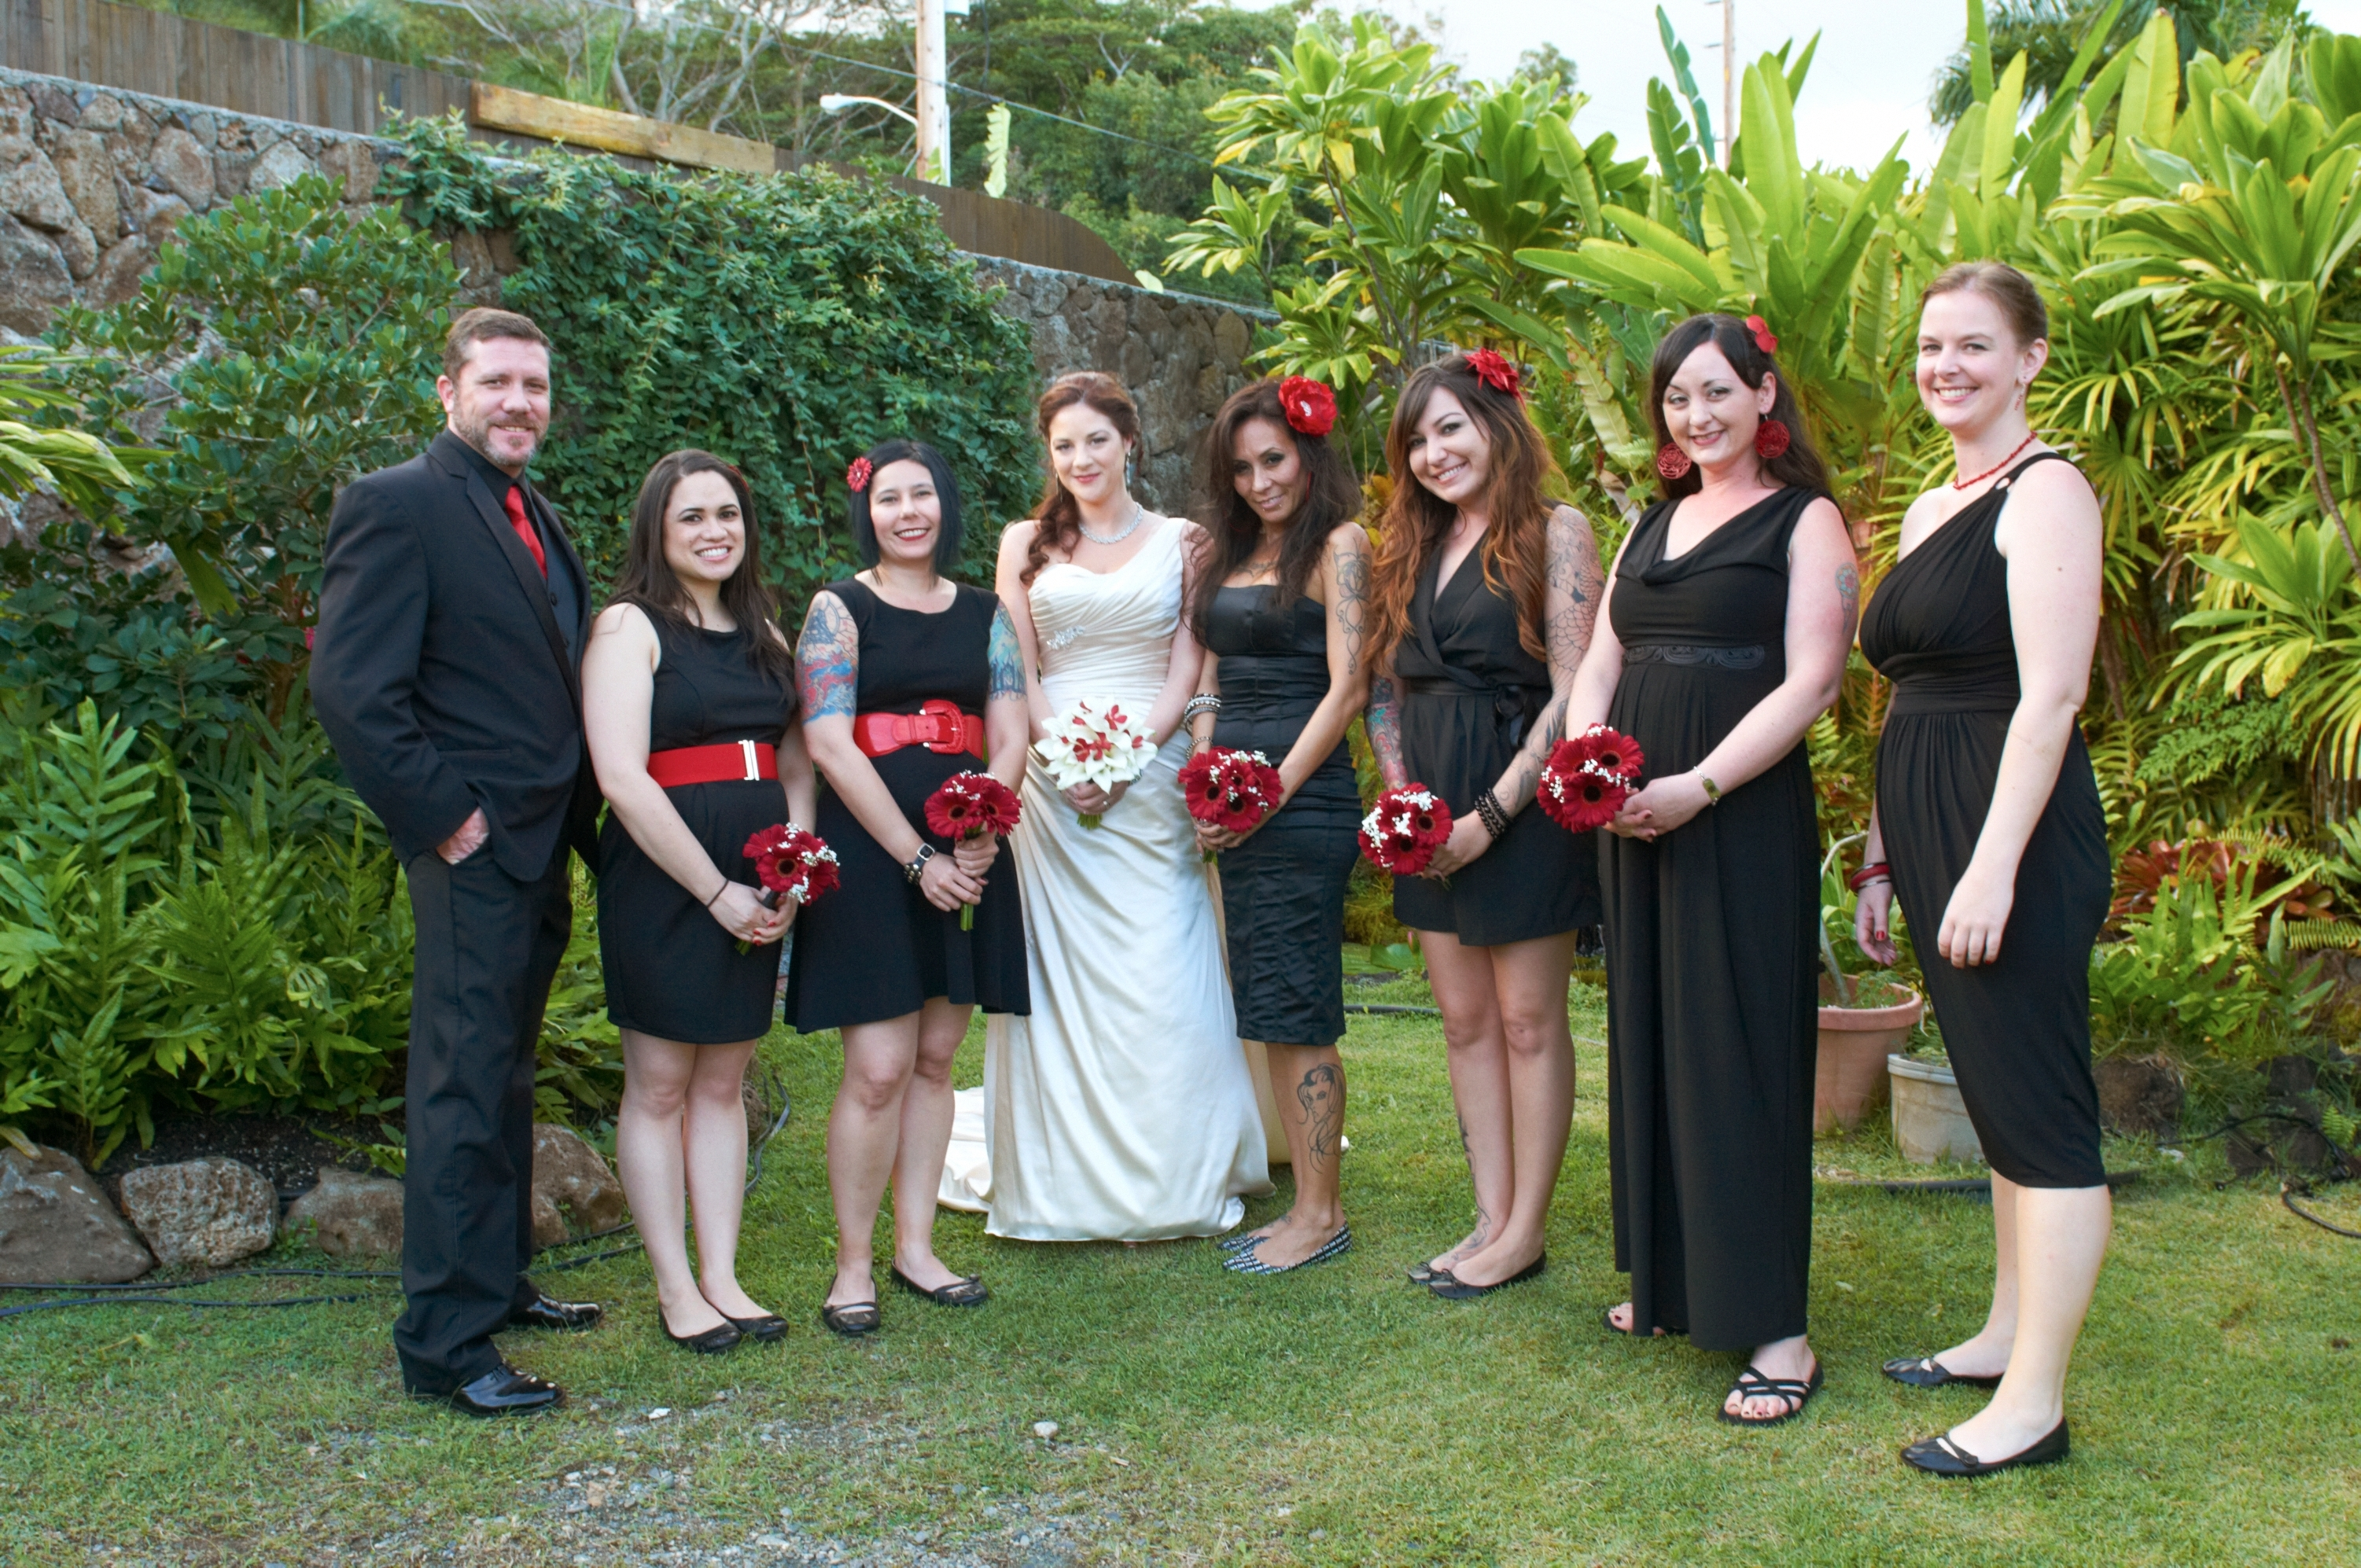 Bridesmaids, Bridesmaids Dresses, Bridesmaid Dresses, Destinations, Fashion, red, black, Hawaii, Red and black